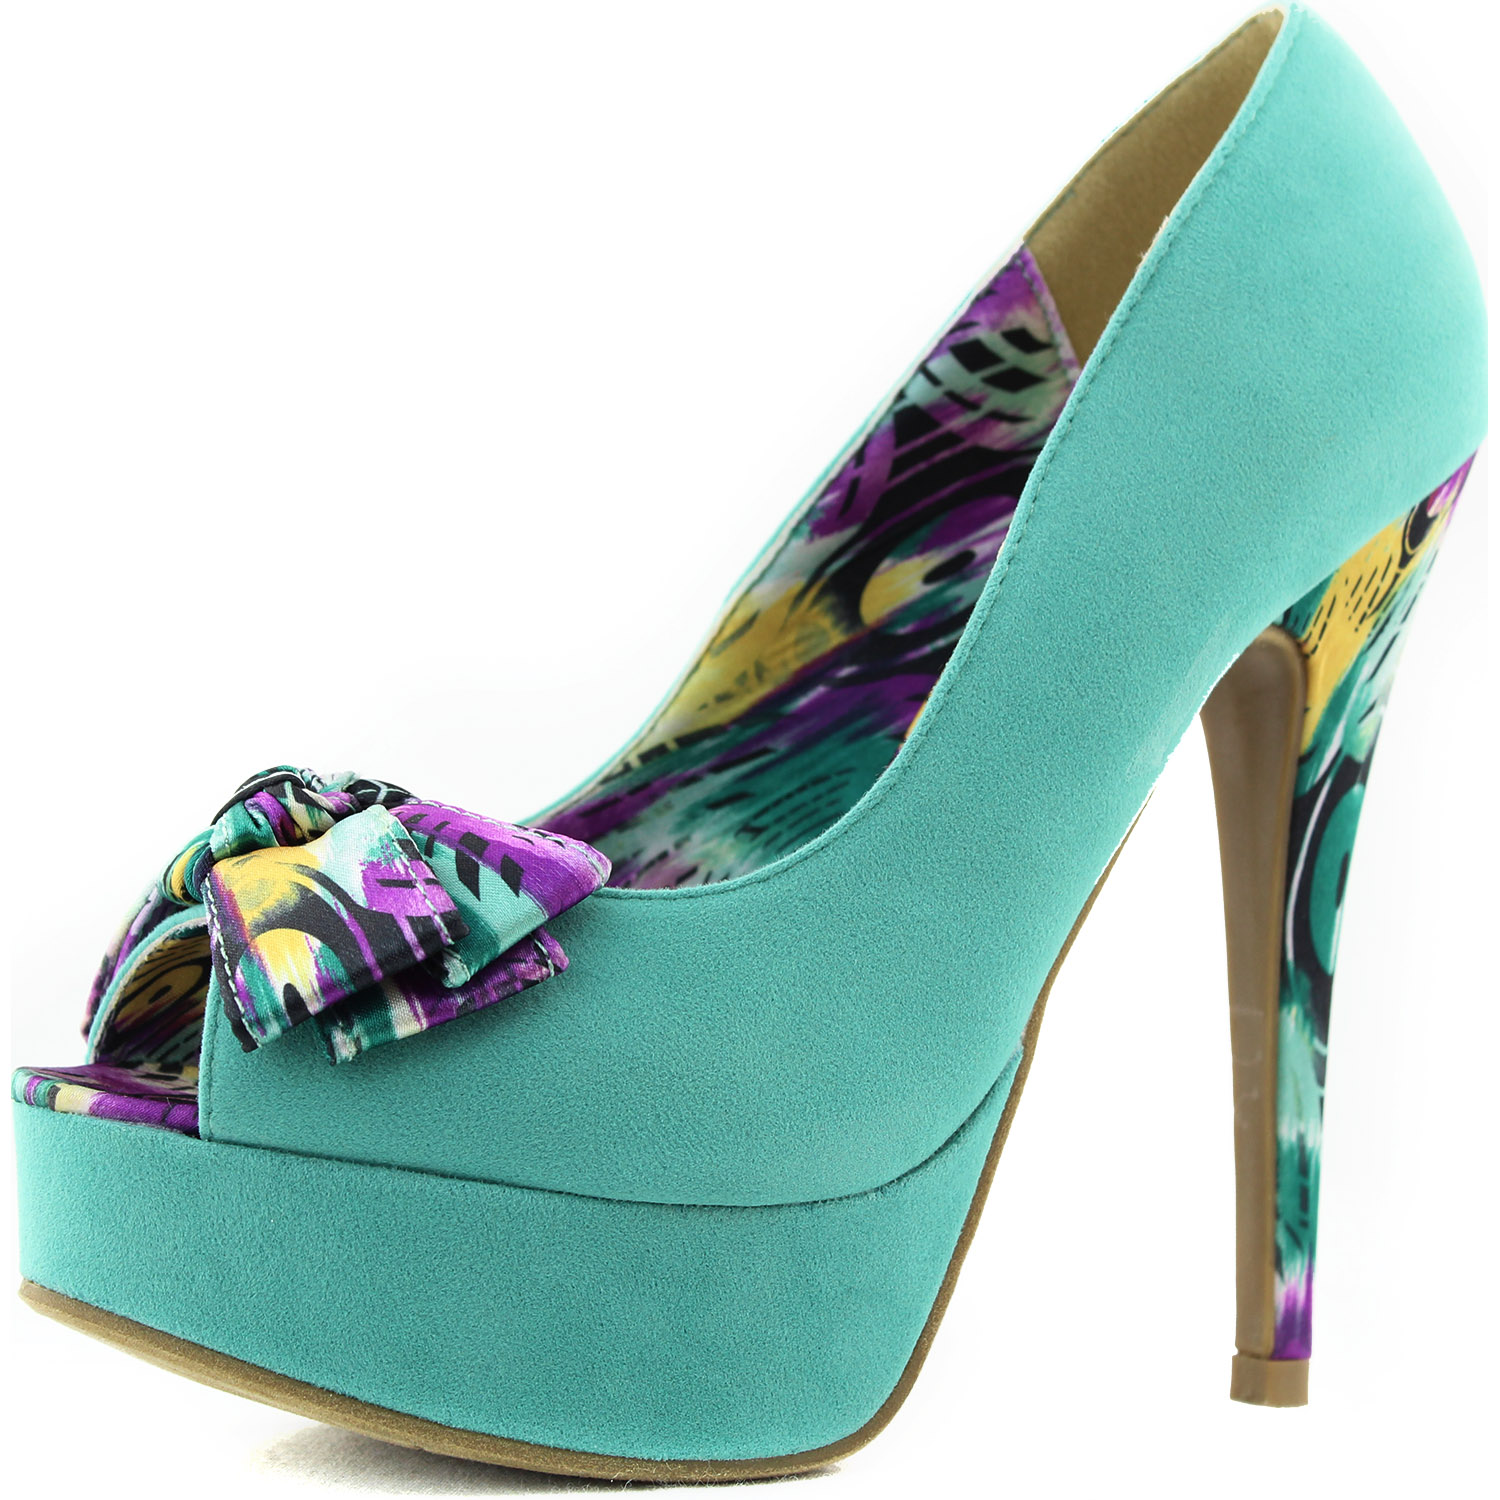 Teal Green Peep Toe Pumps Floral Ribbon Bow Tie Sexy High